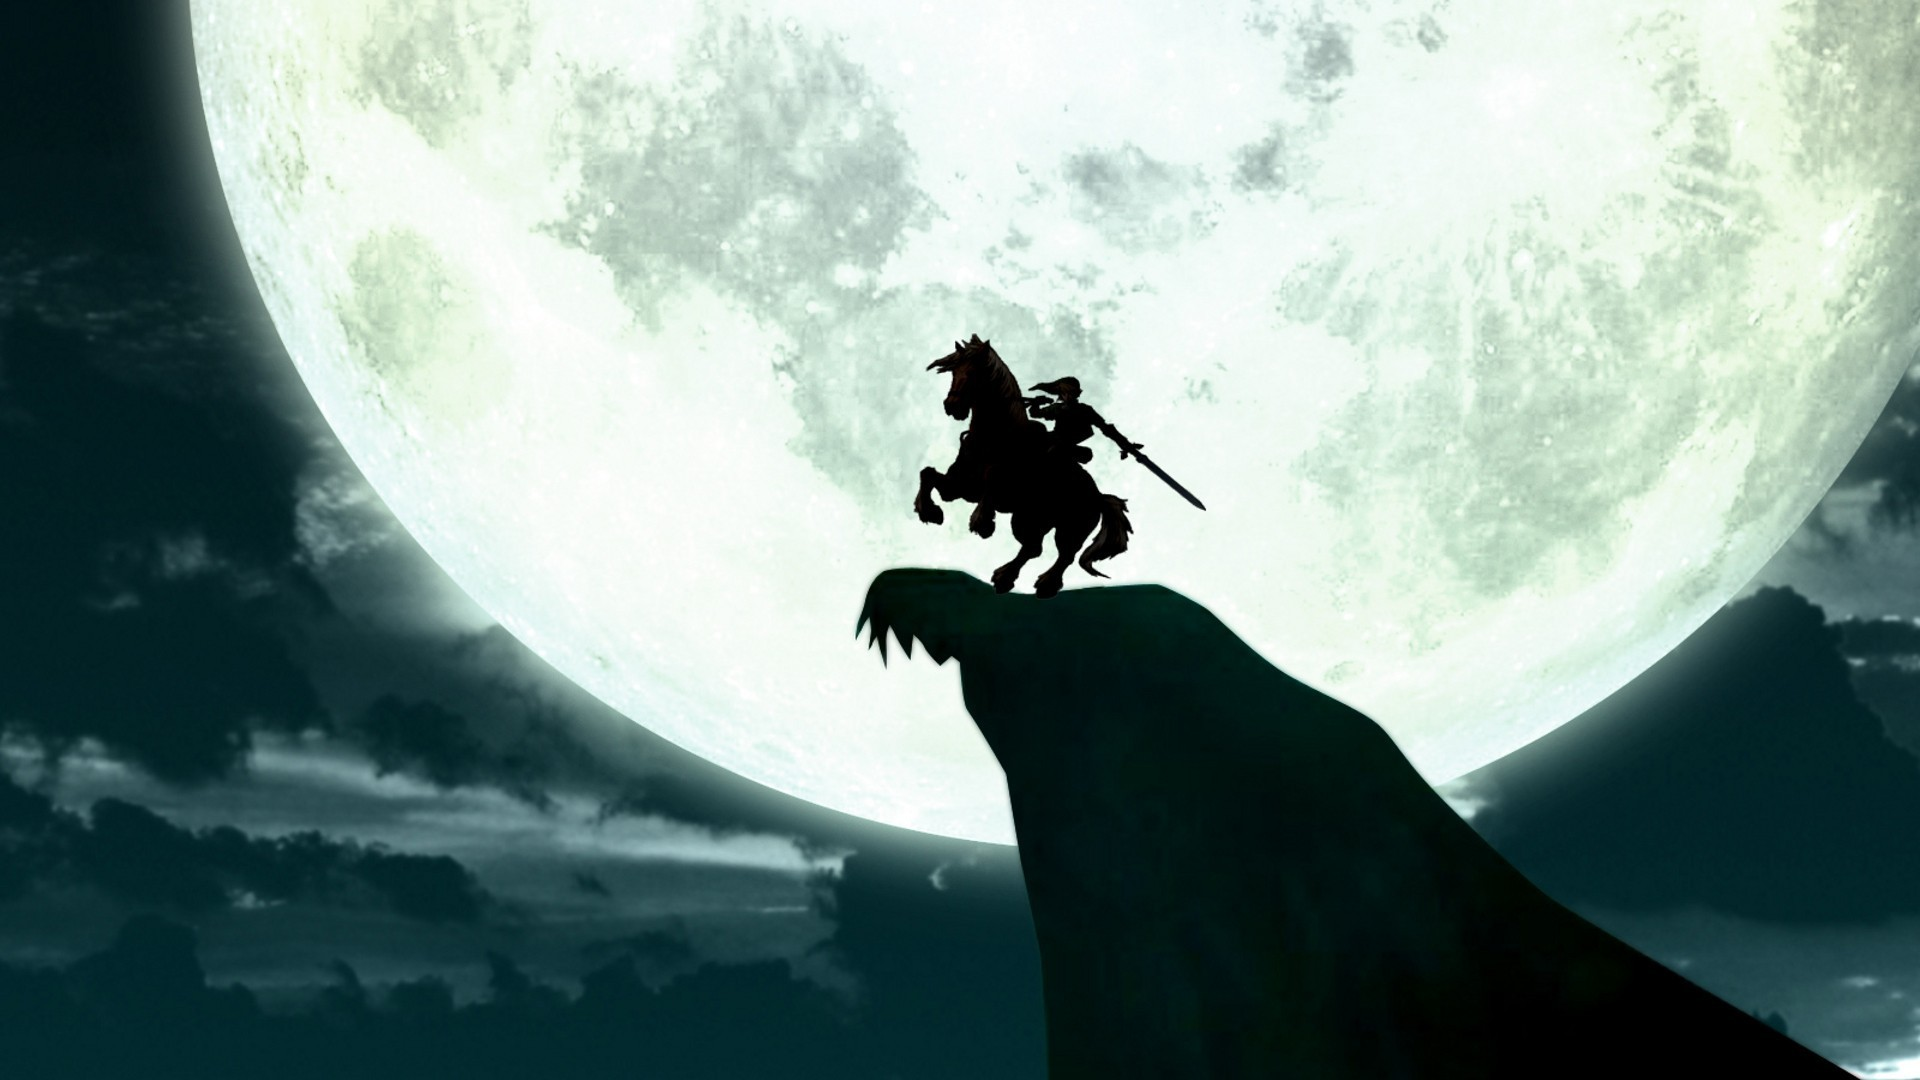 1920x1080 #The Legend of Zelda, #Link, #video games wallpaper